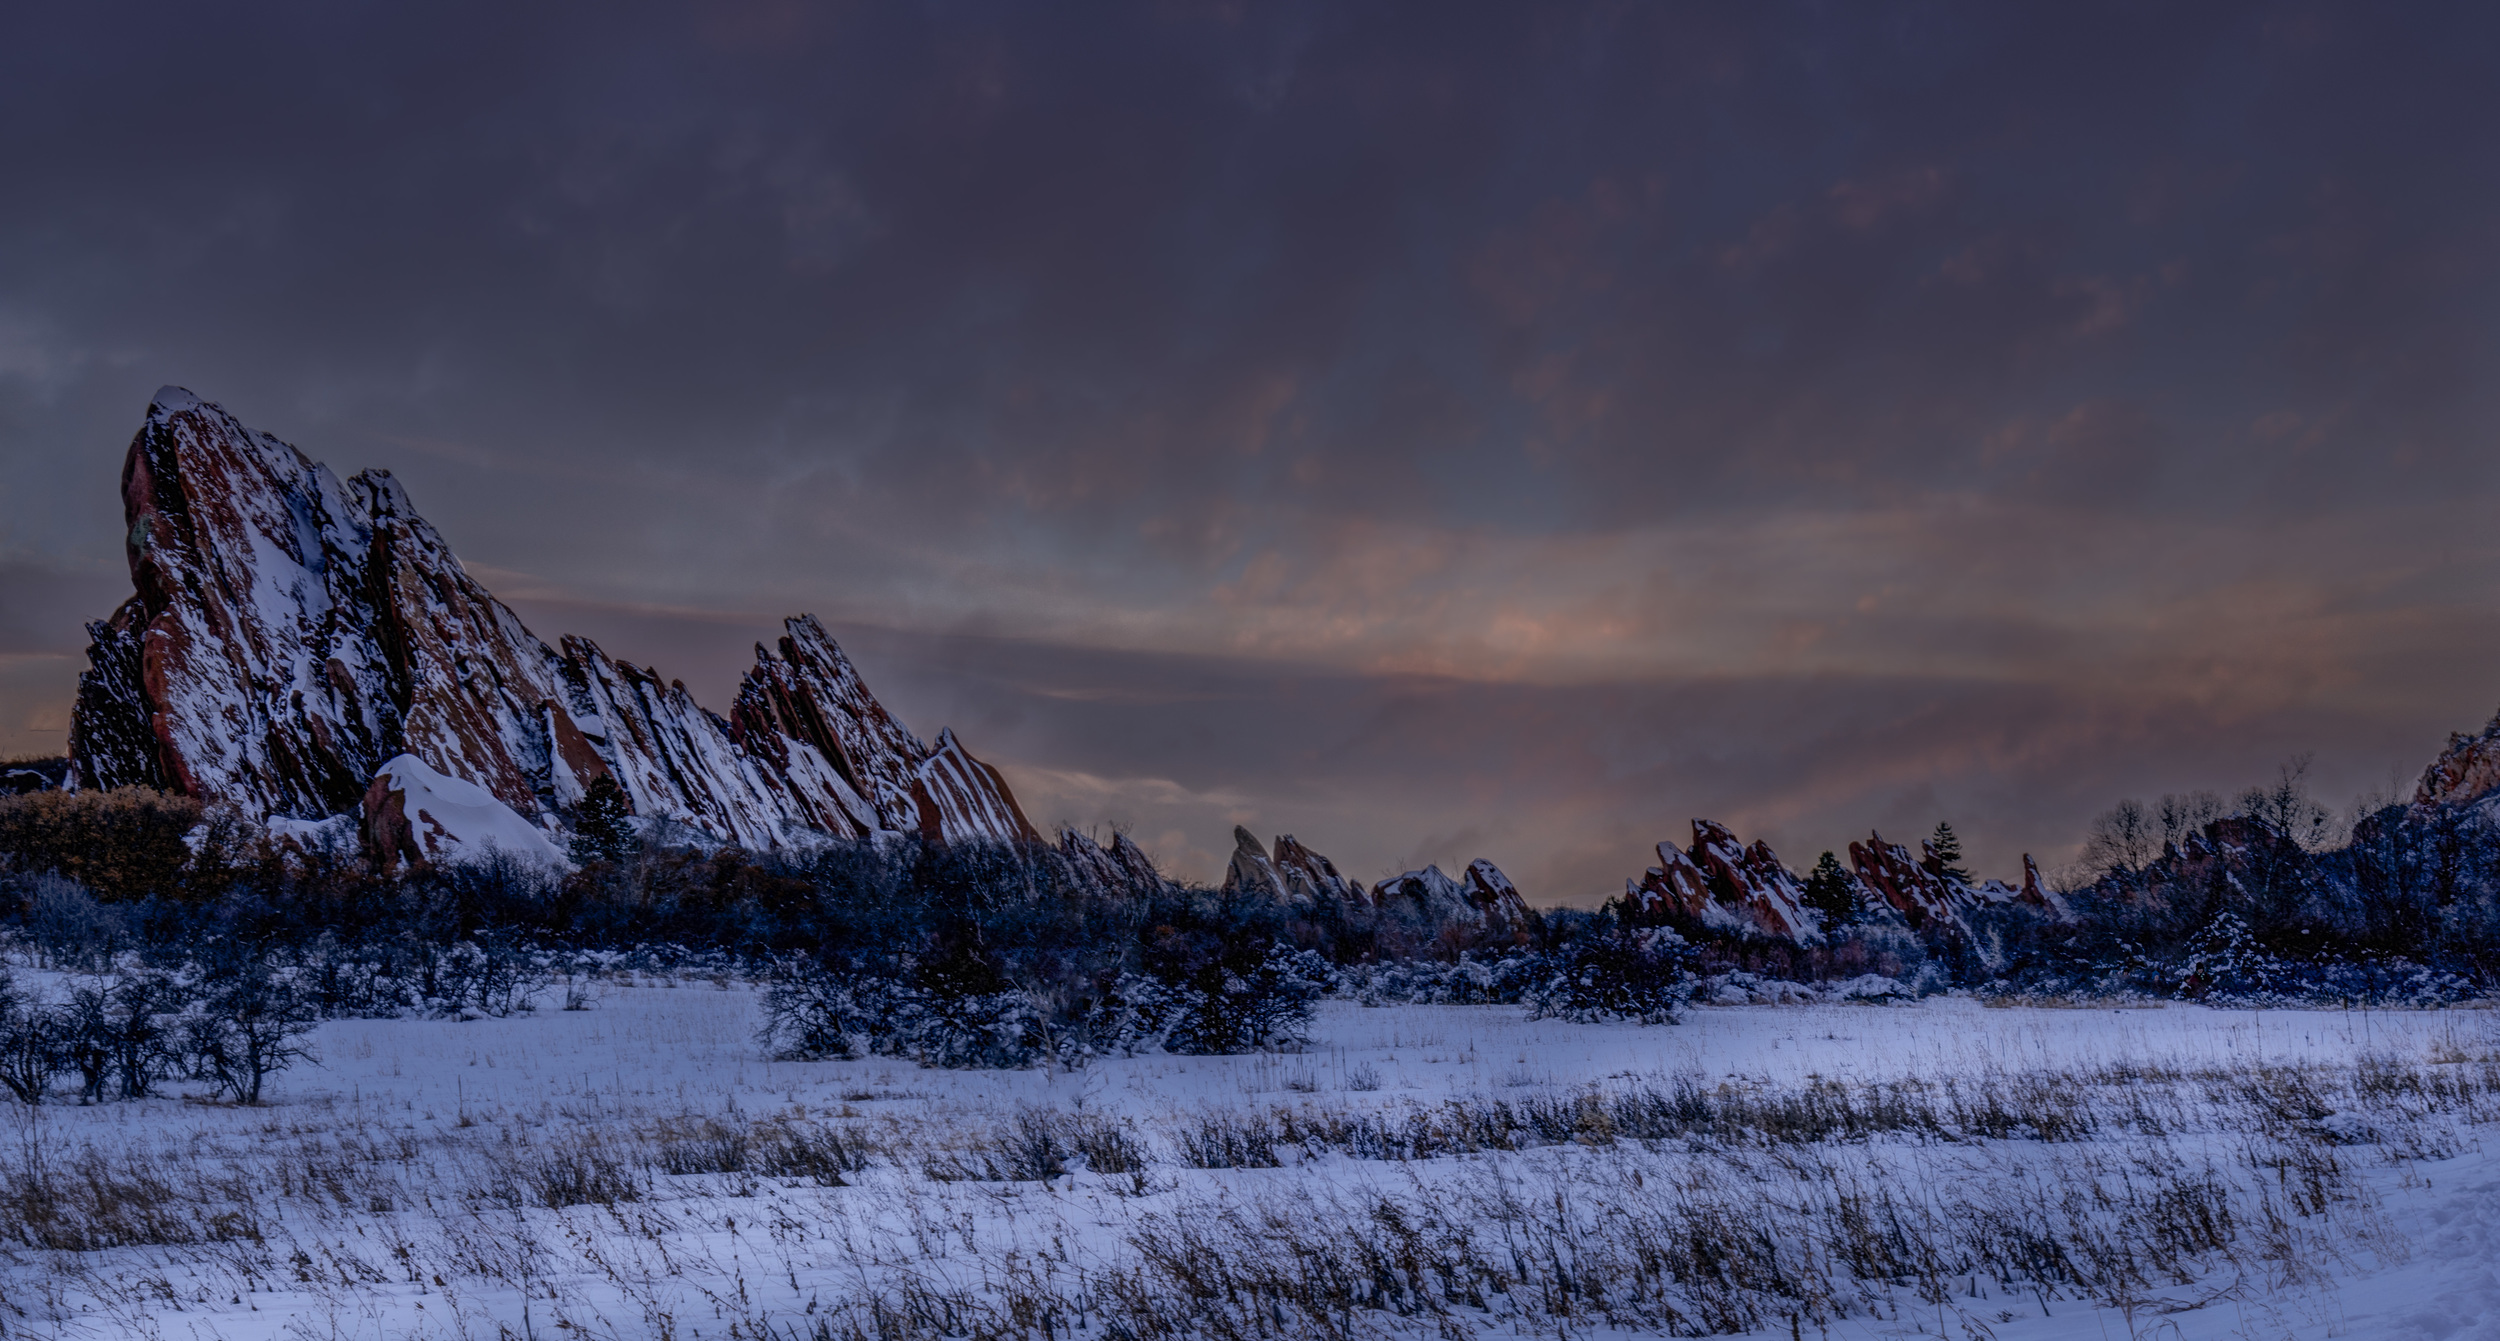 Winter Roxborough-154_5_6HDR-Edit.jpg